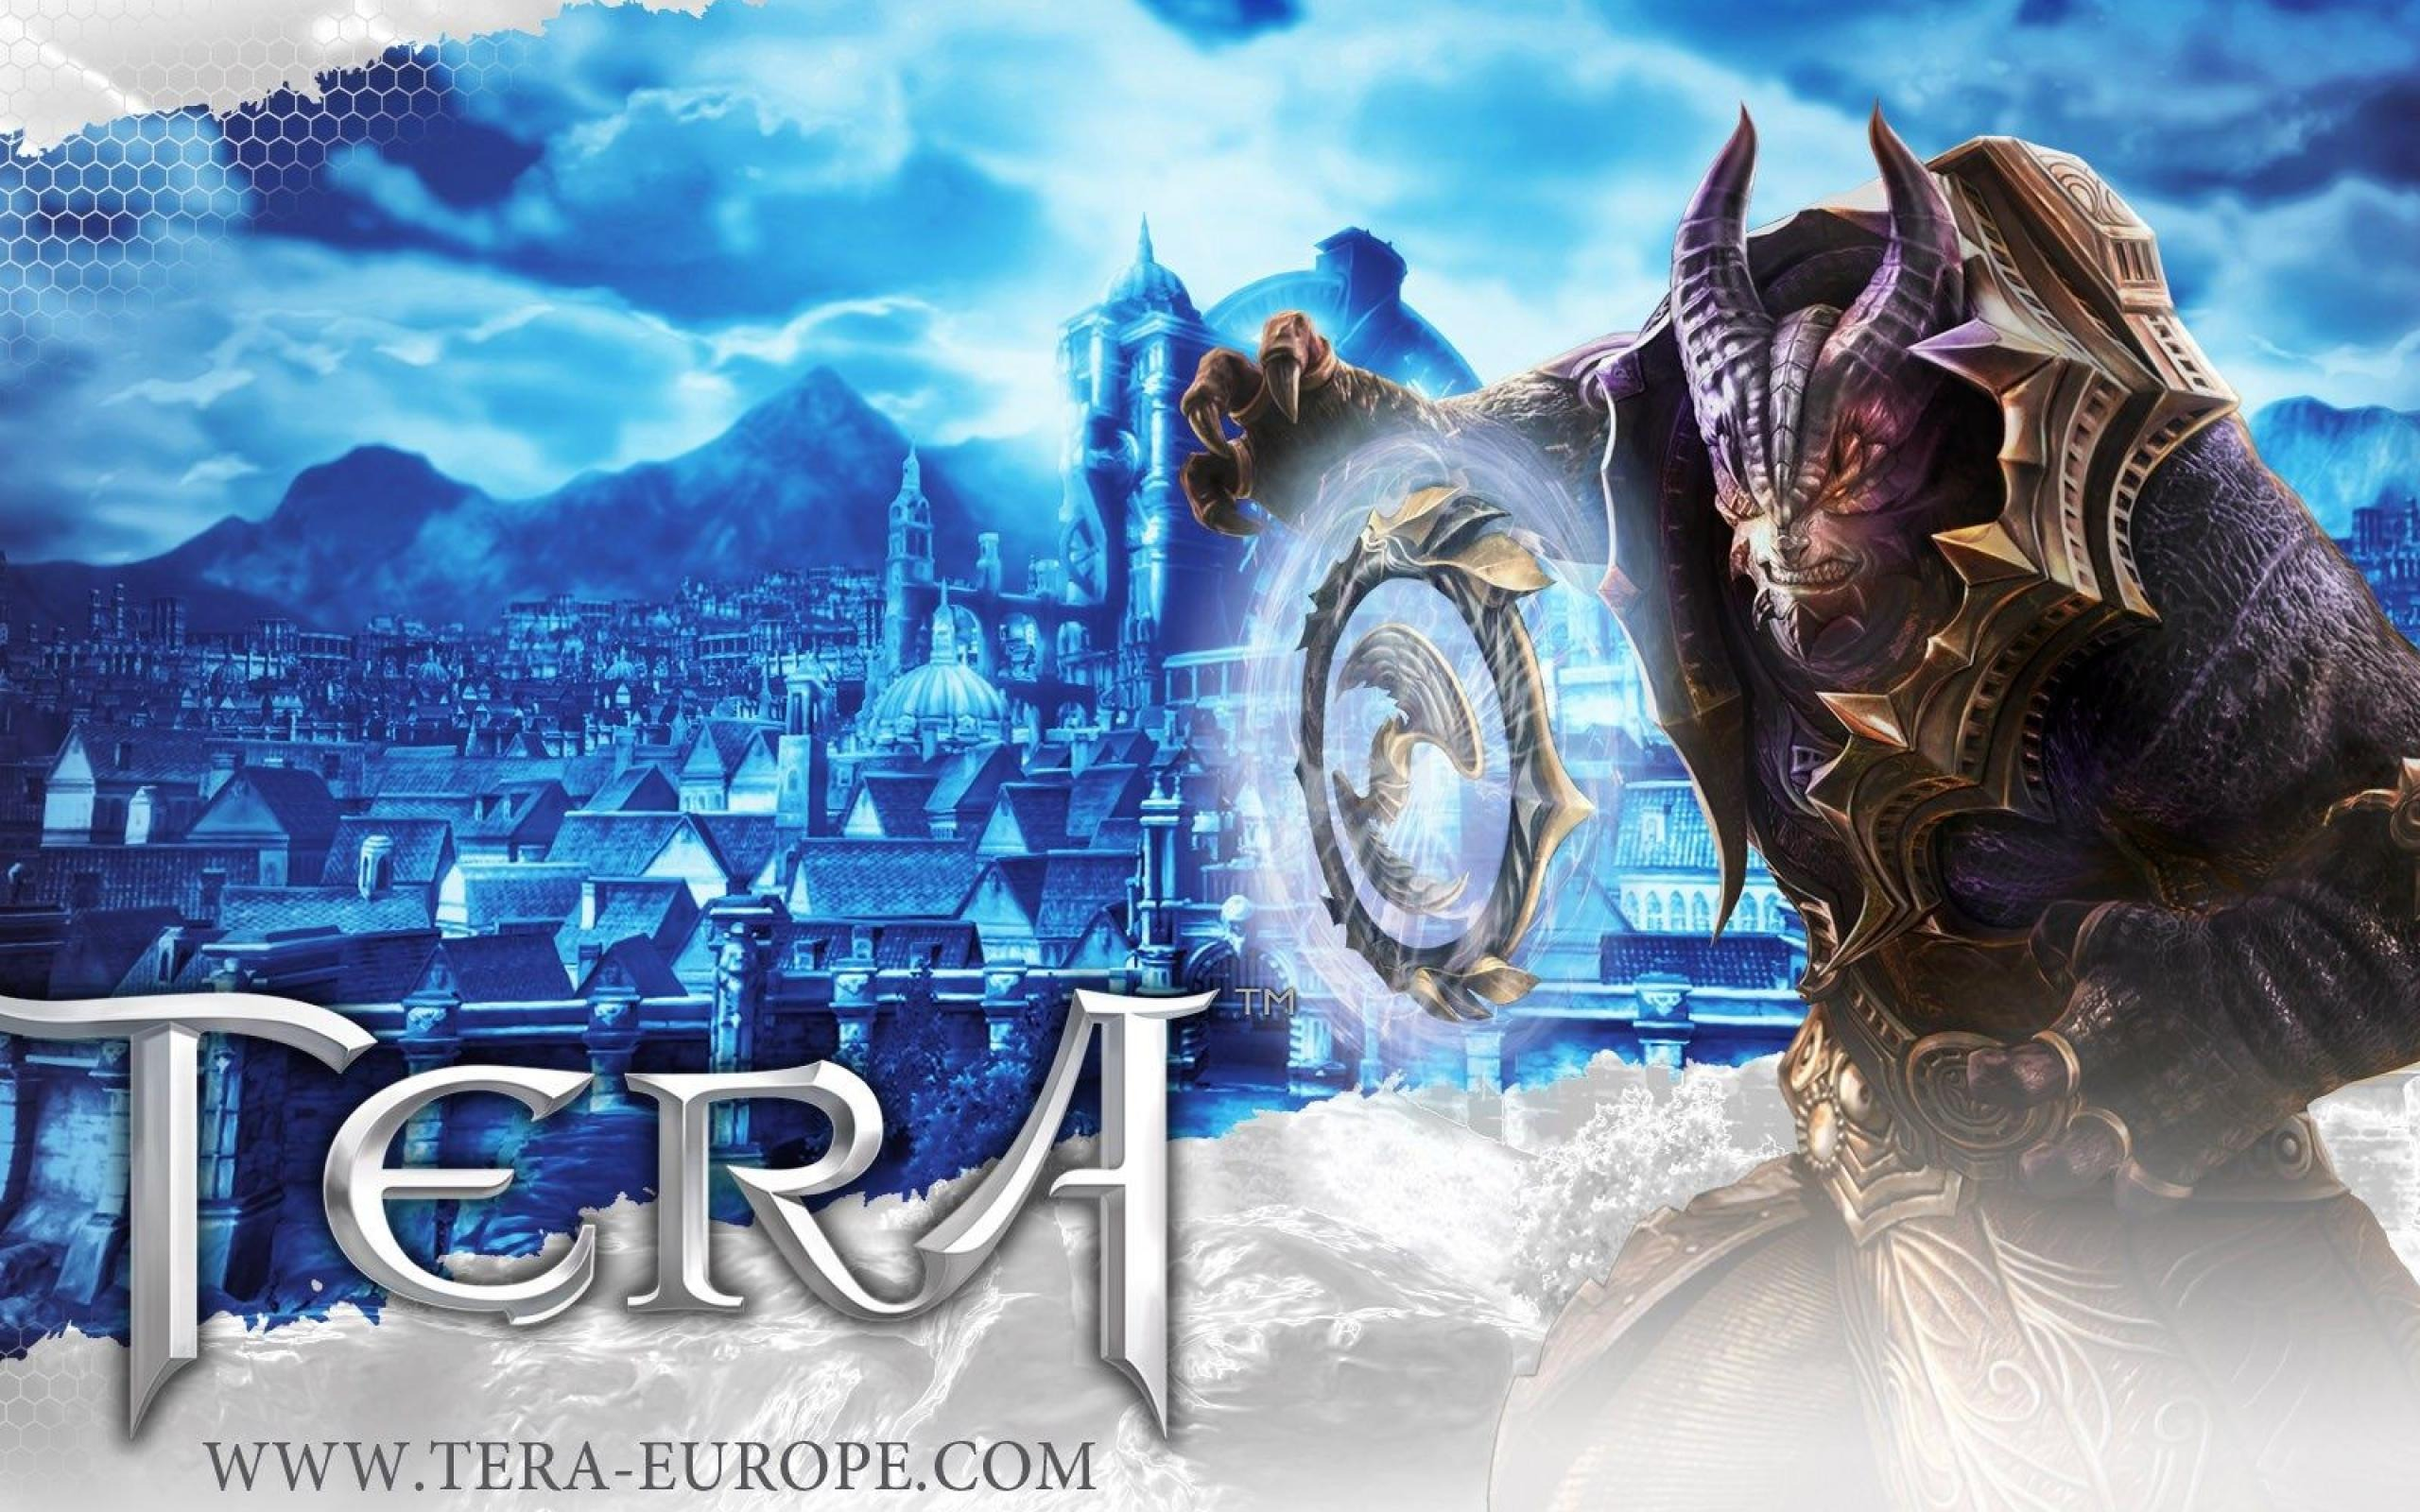 Tera Game Hd Wallpaper 10 Avance 10wallpapercom